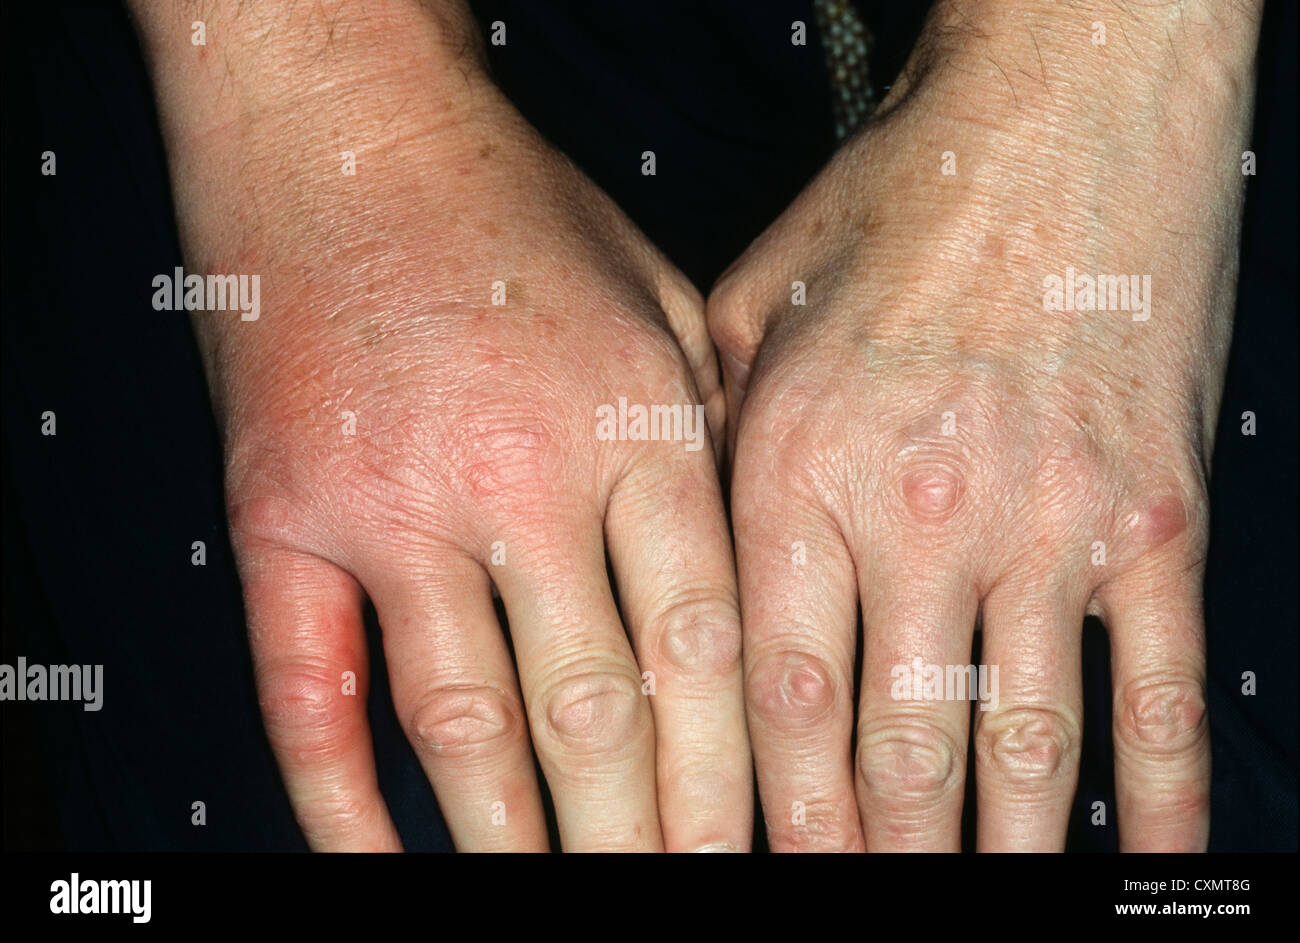 Cellulitis Affecting The Right Hand With Swelling